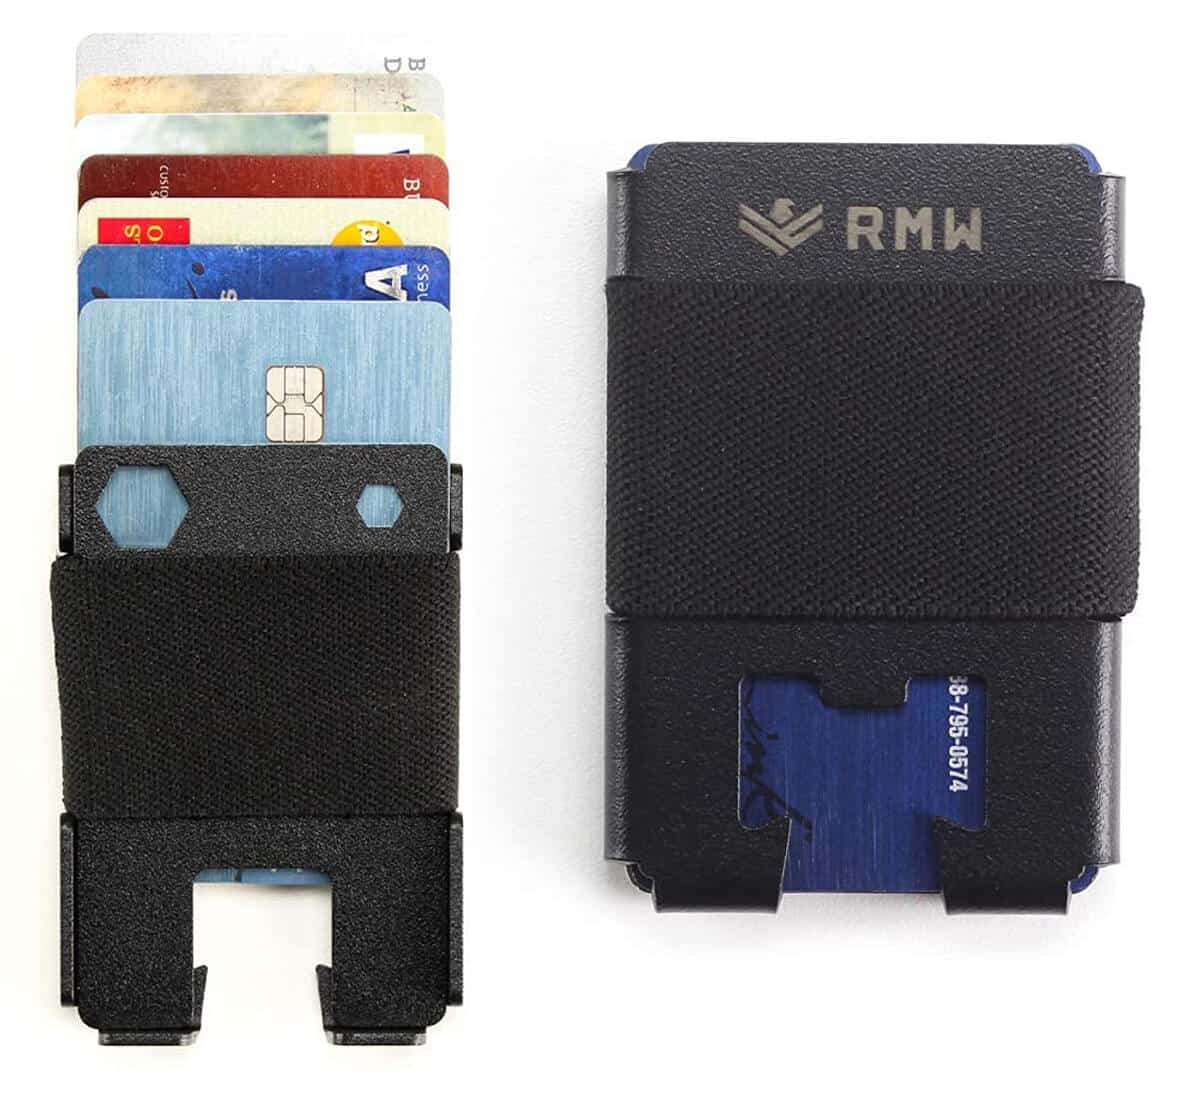 Ranger Minimalist RFID Blocking Slim Front Pocket Wallet For Men